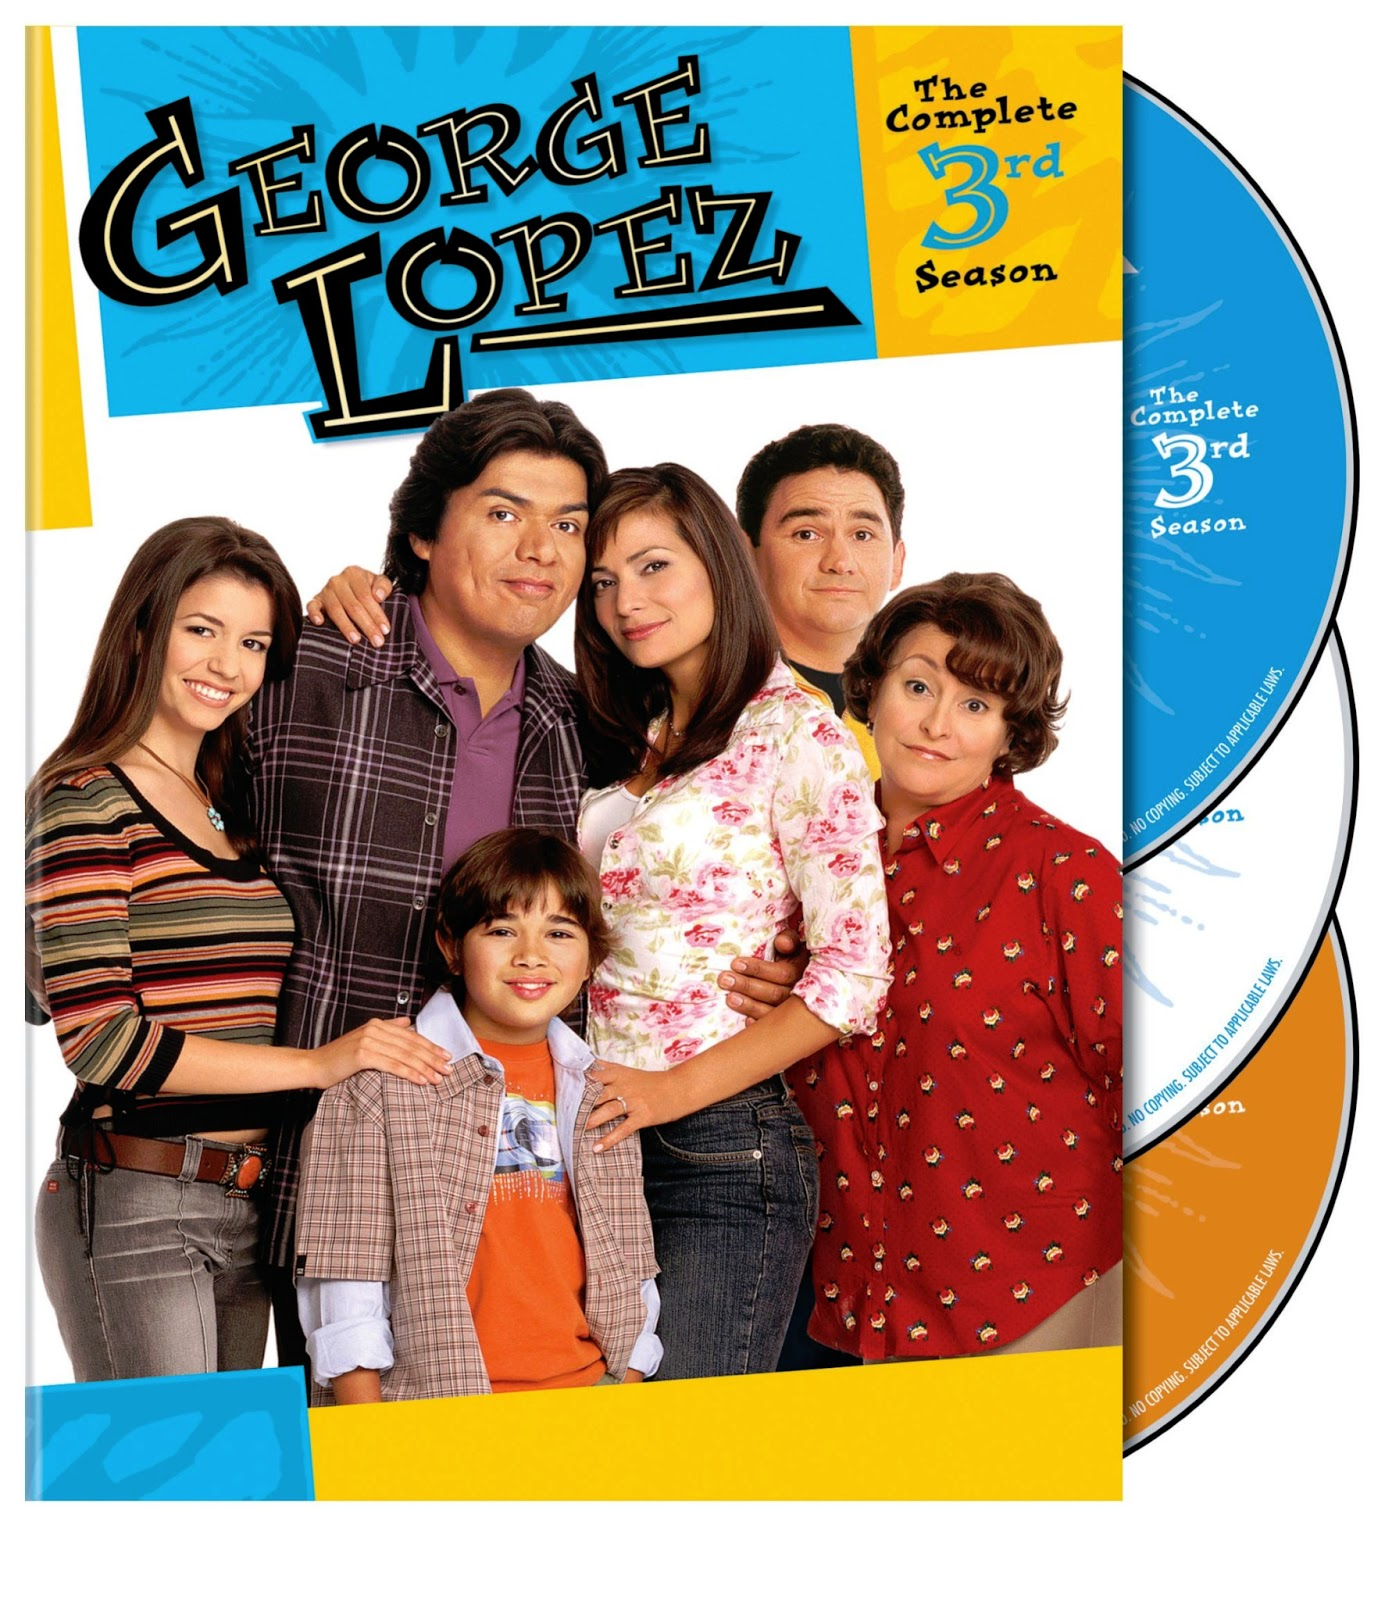 george lopez dubya dad and dating part 1